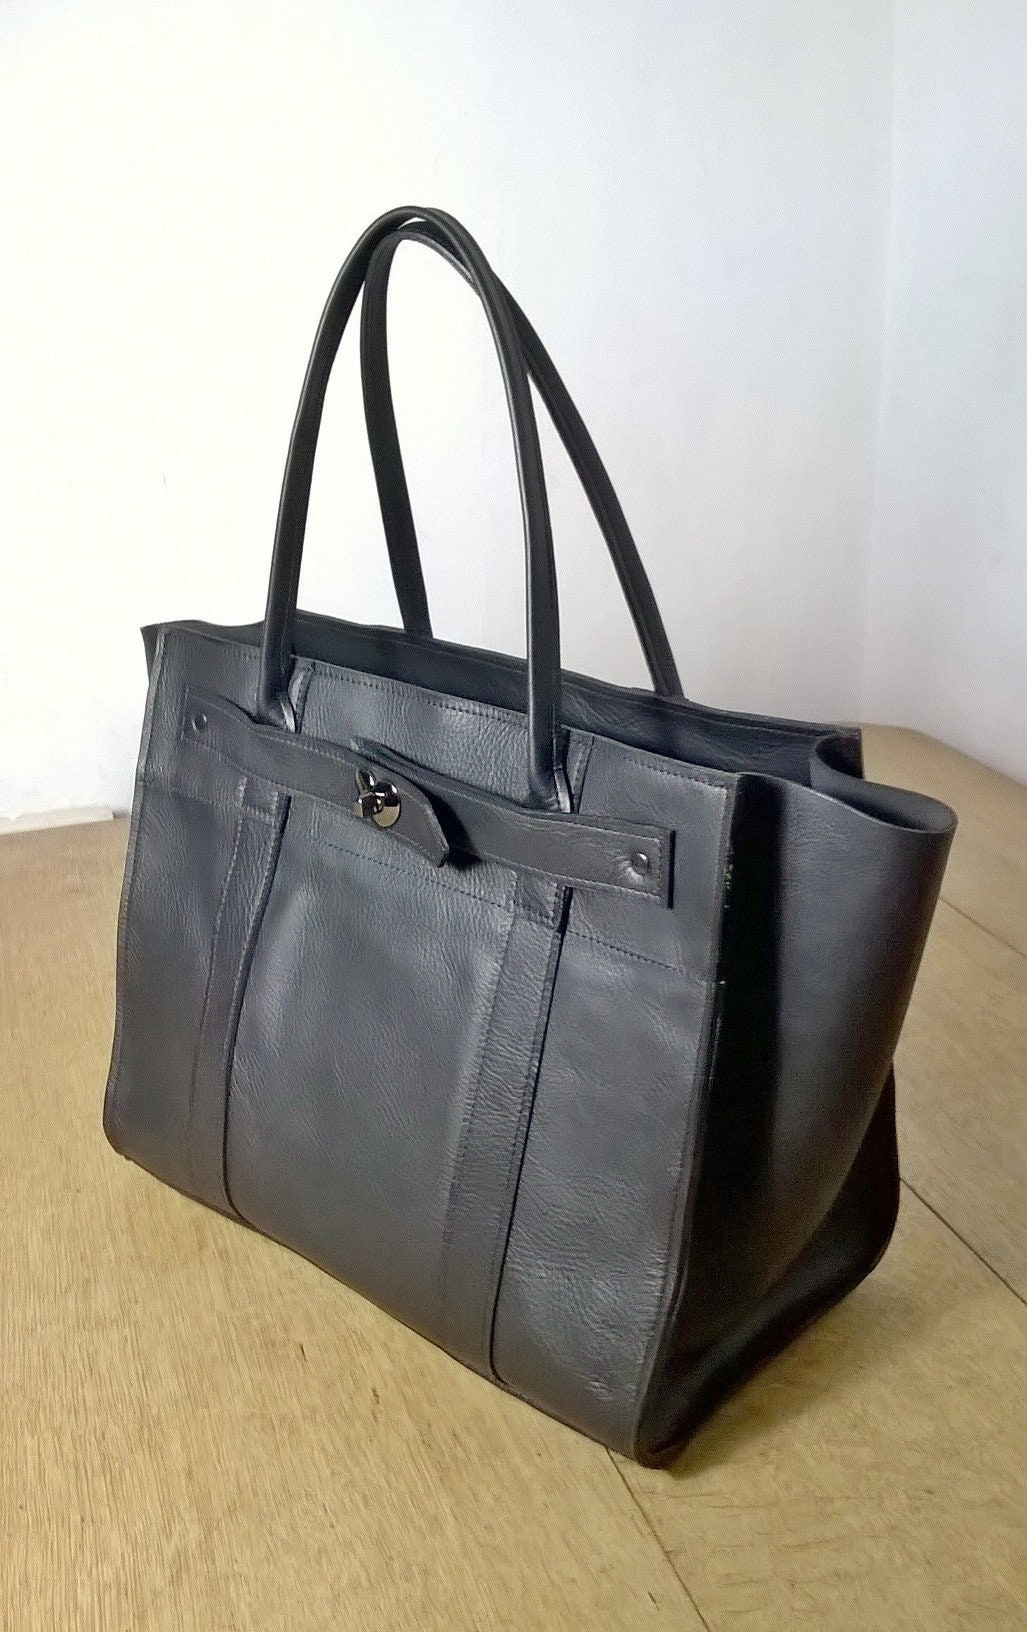 0bb4851c1dac Ladies Black Leather Tote Handbag. Large black leather Tote. Leather  Shoulder Bag